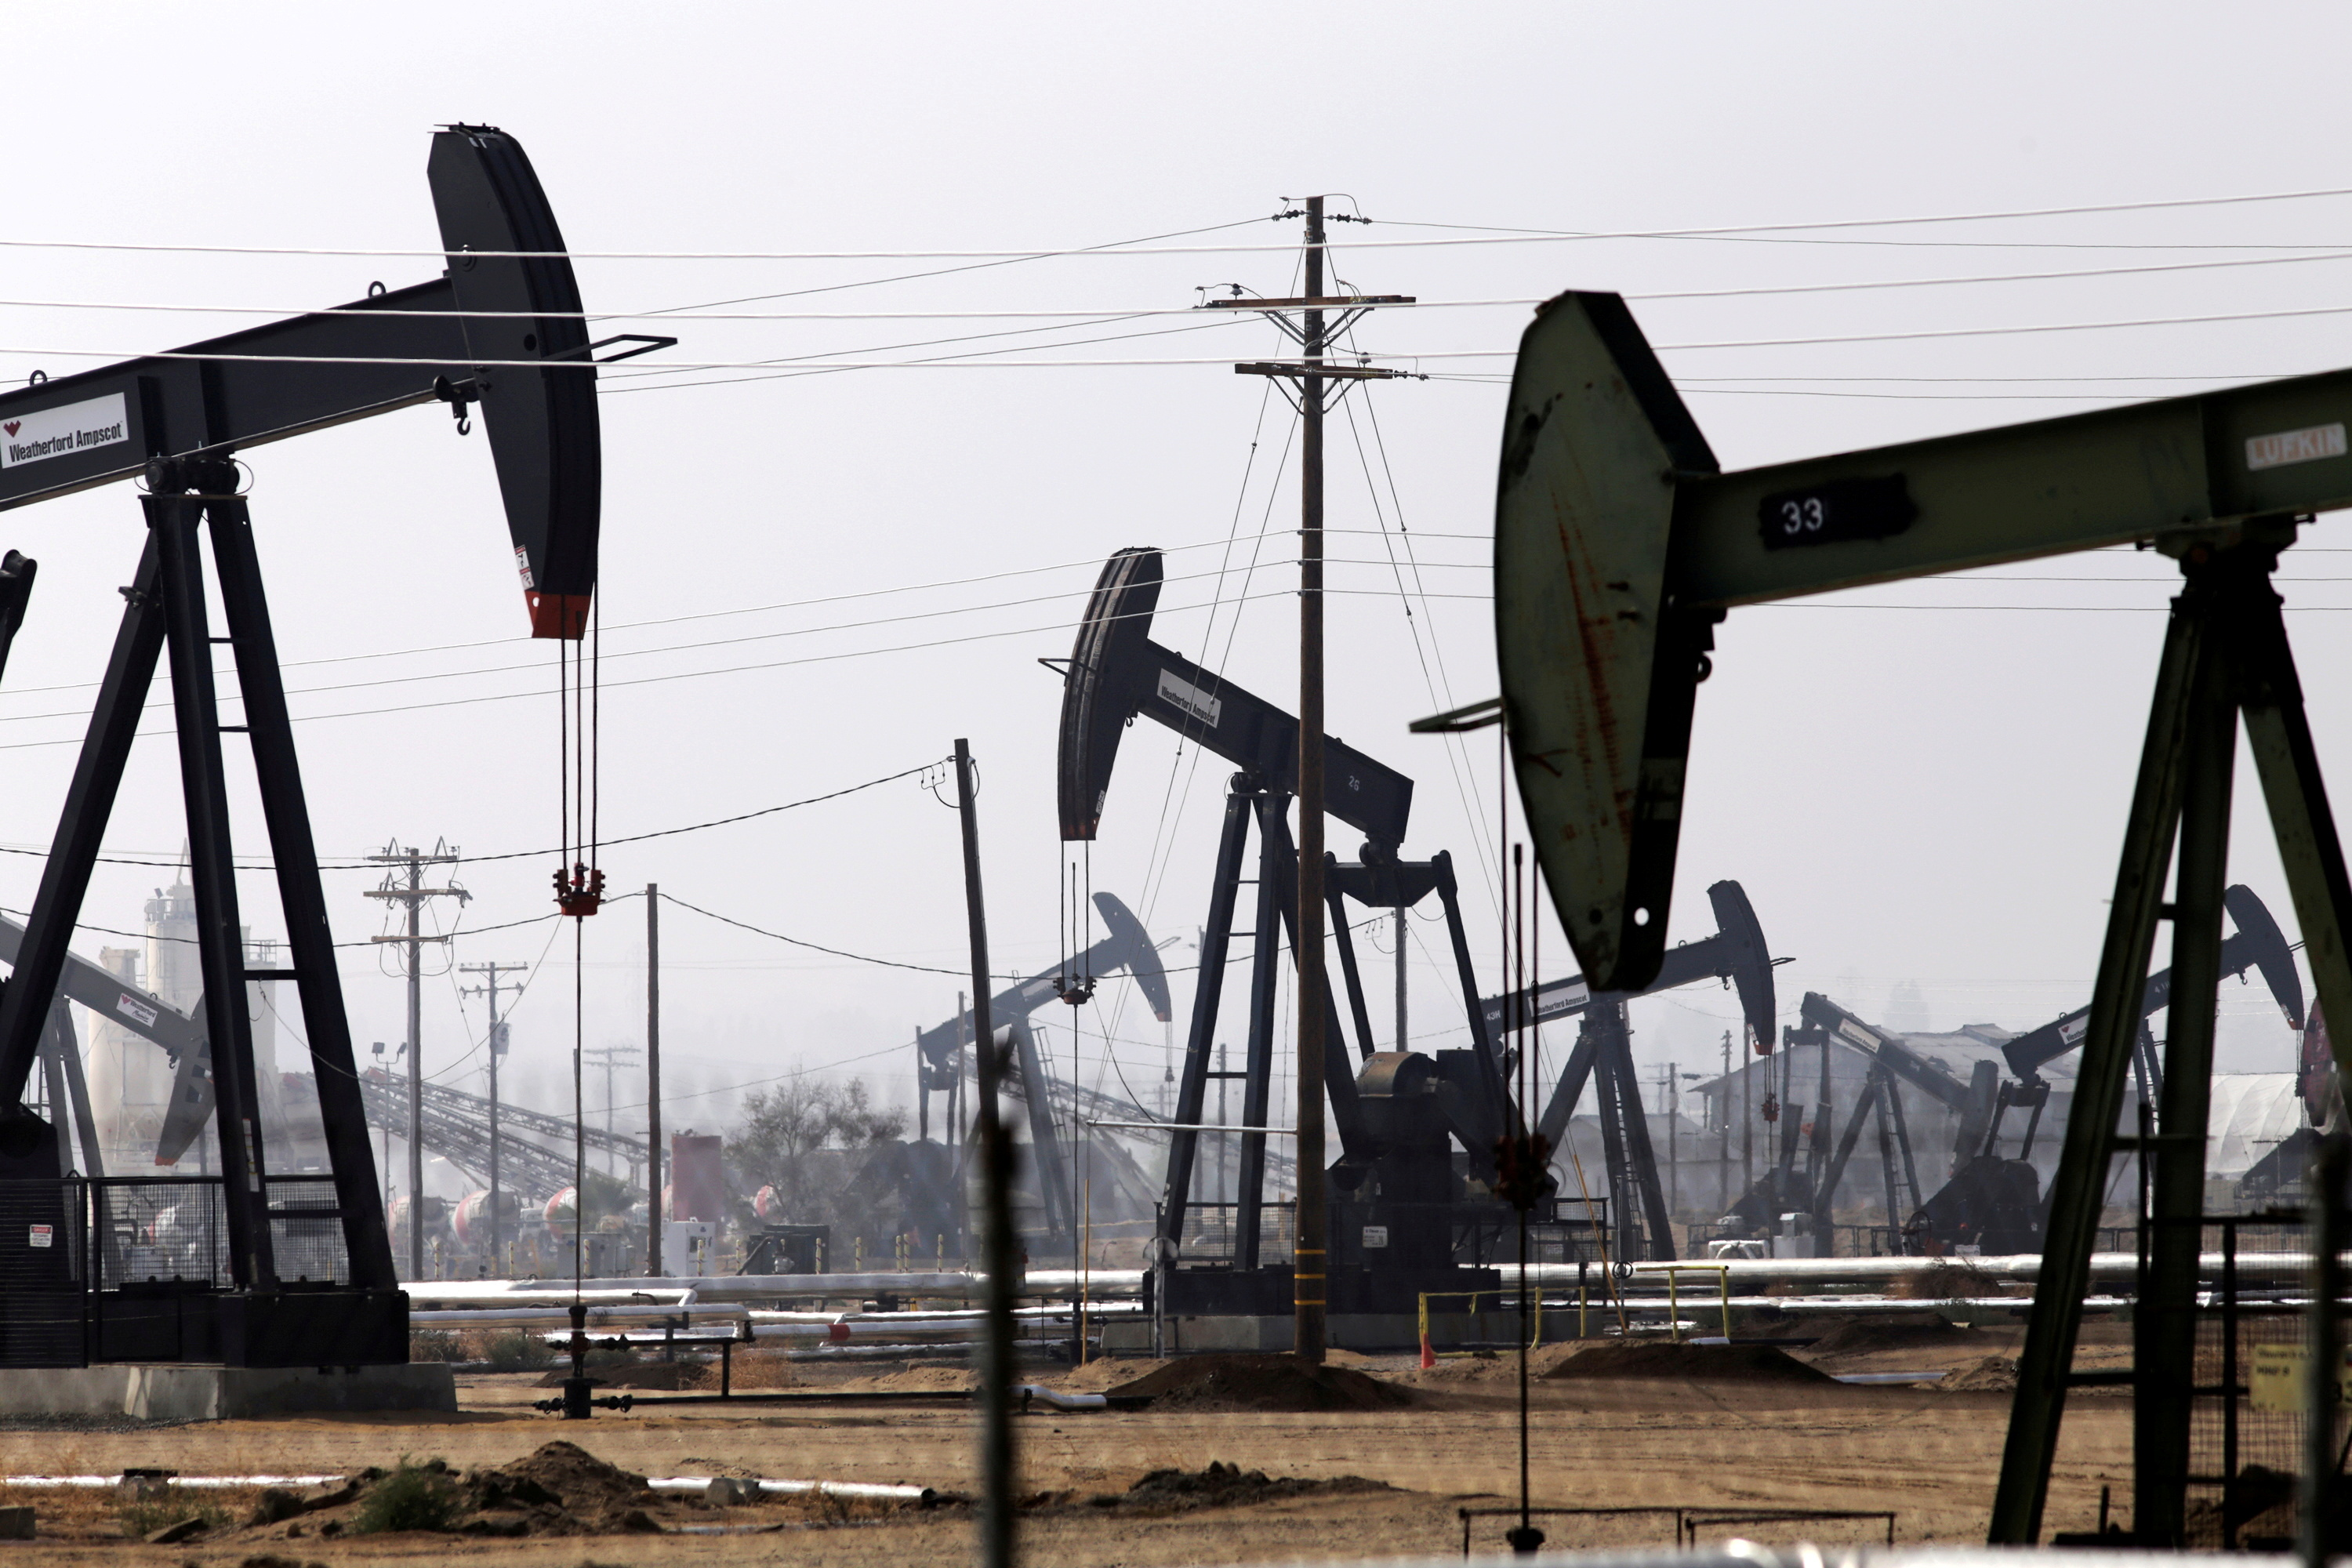 Oil drills are pictured in the Kern River oil field in Bakersfield, California November 9, 2014. REUTERS/Jonathan Alcorn/File Photo